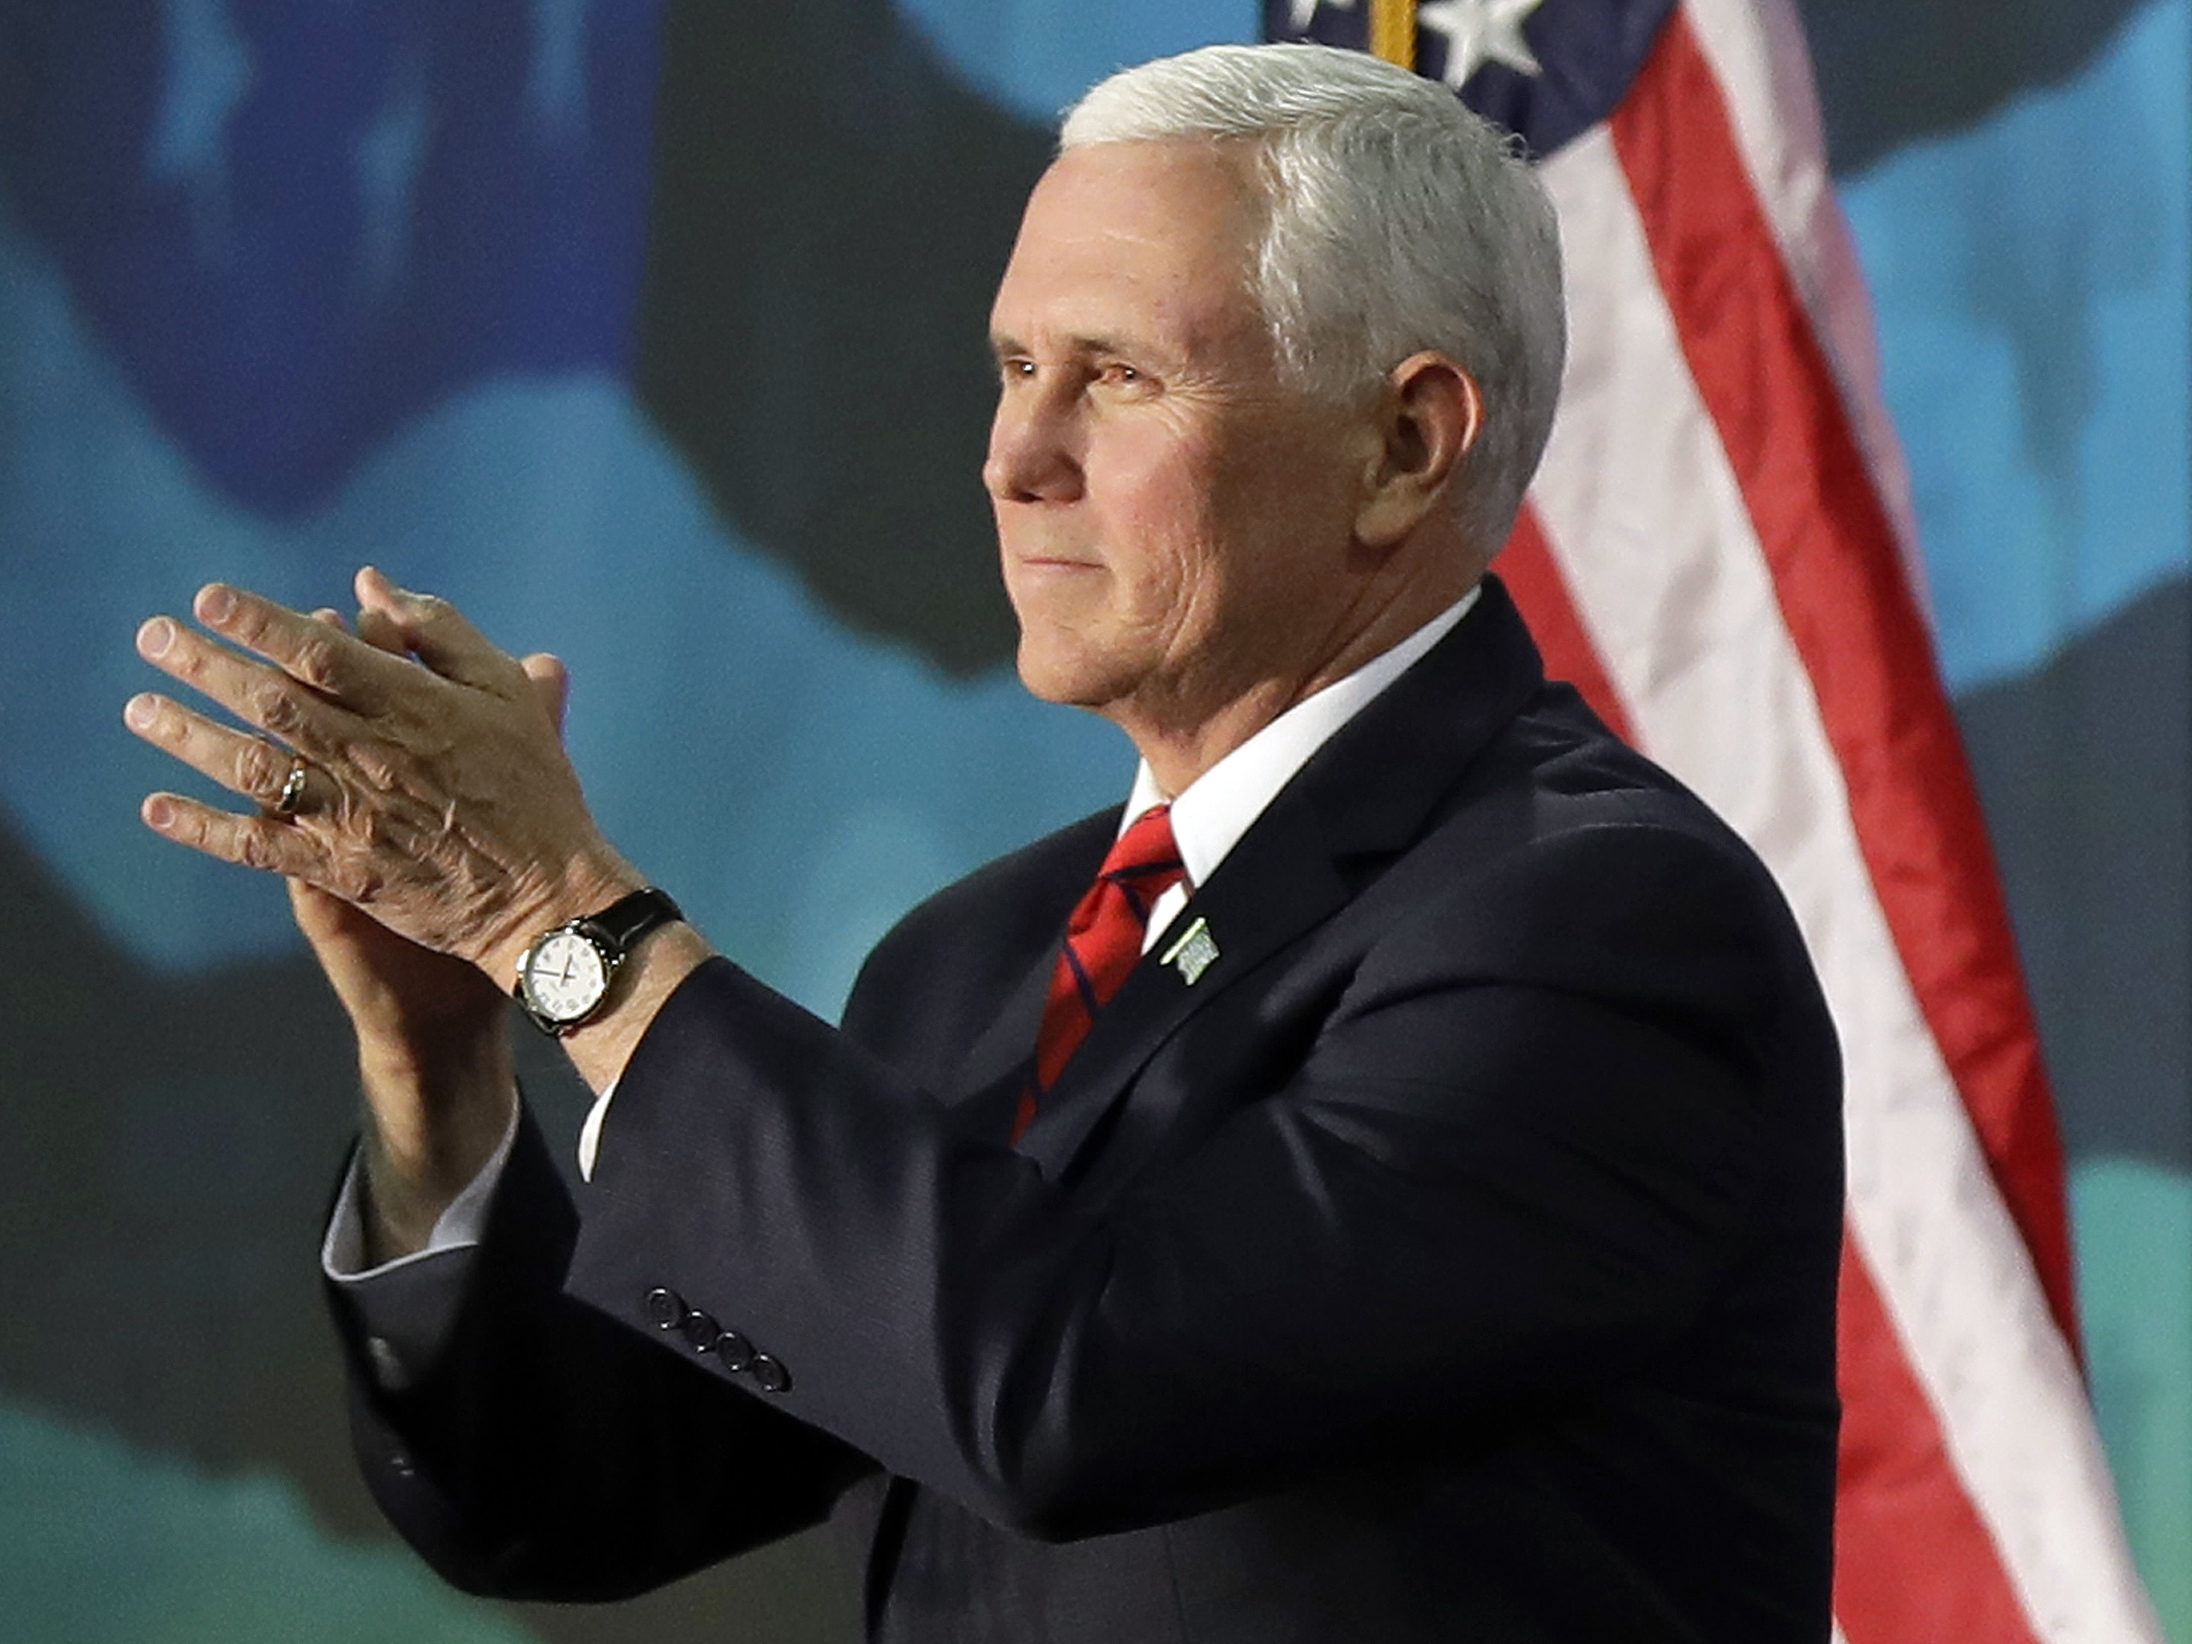 Guns banned at Mike Pence's NRA speech, Parkland students cry hypocrisy